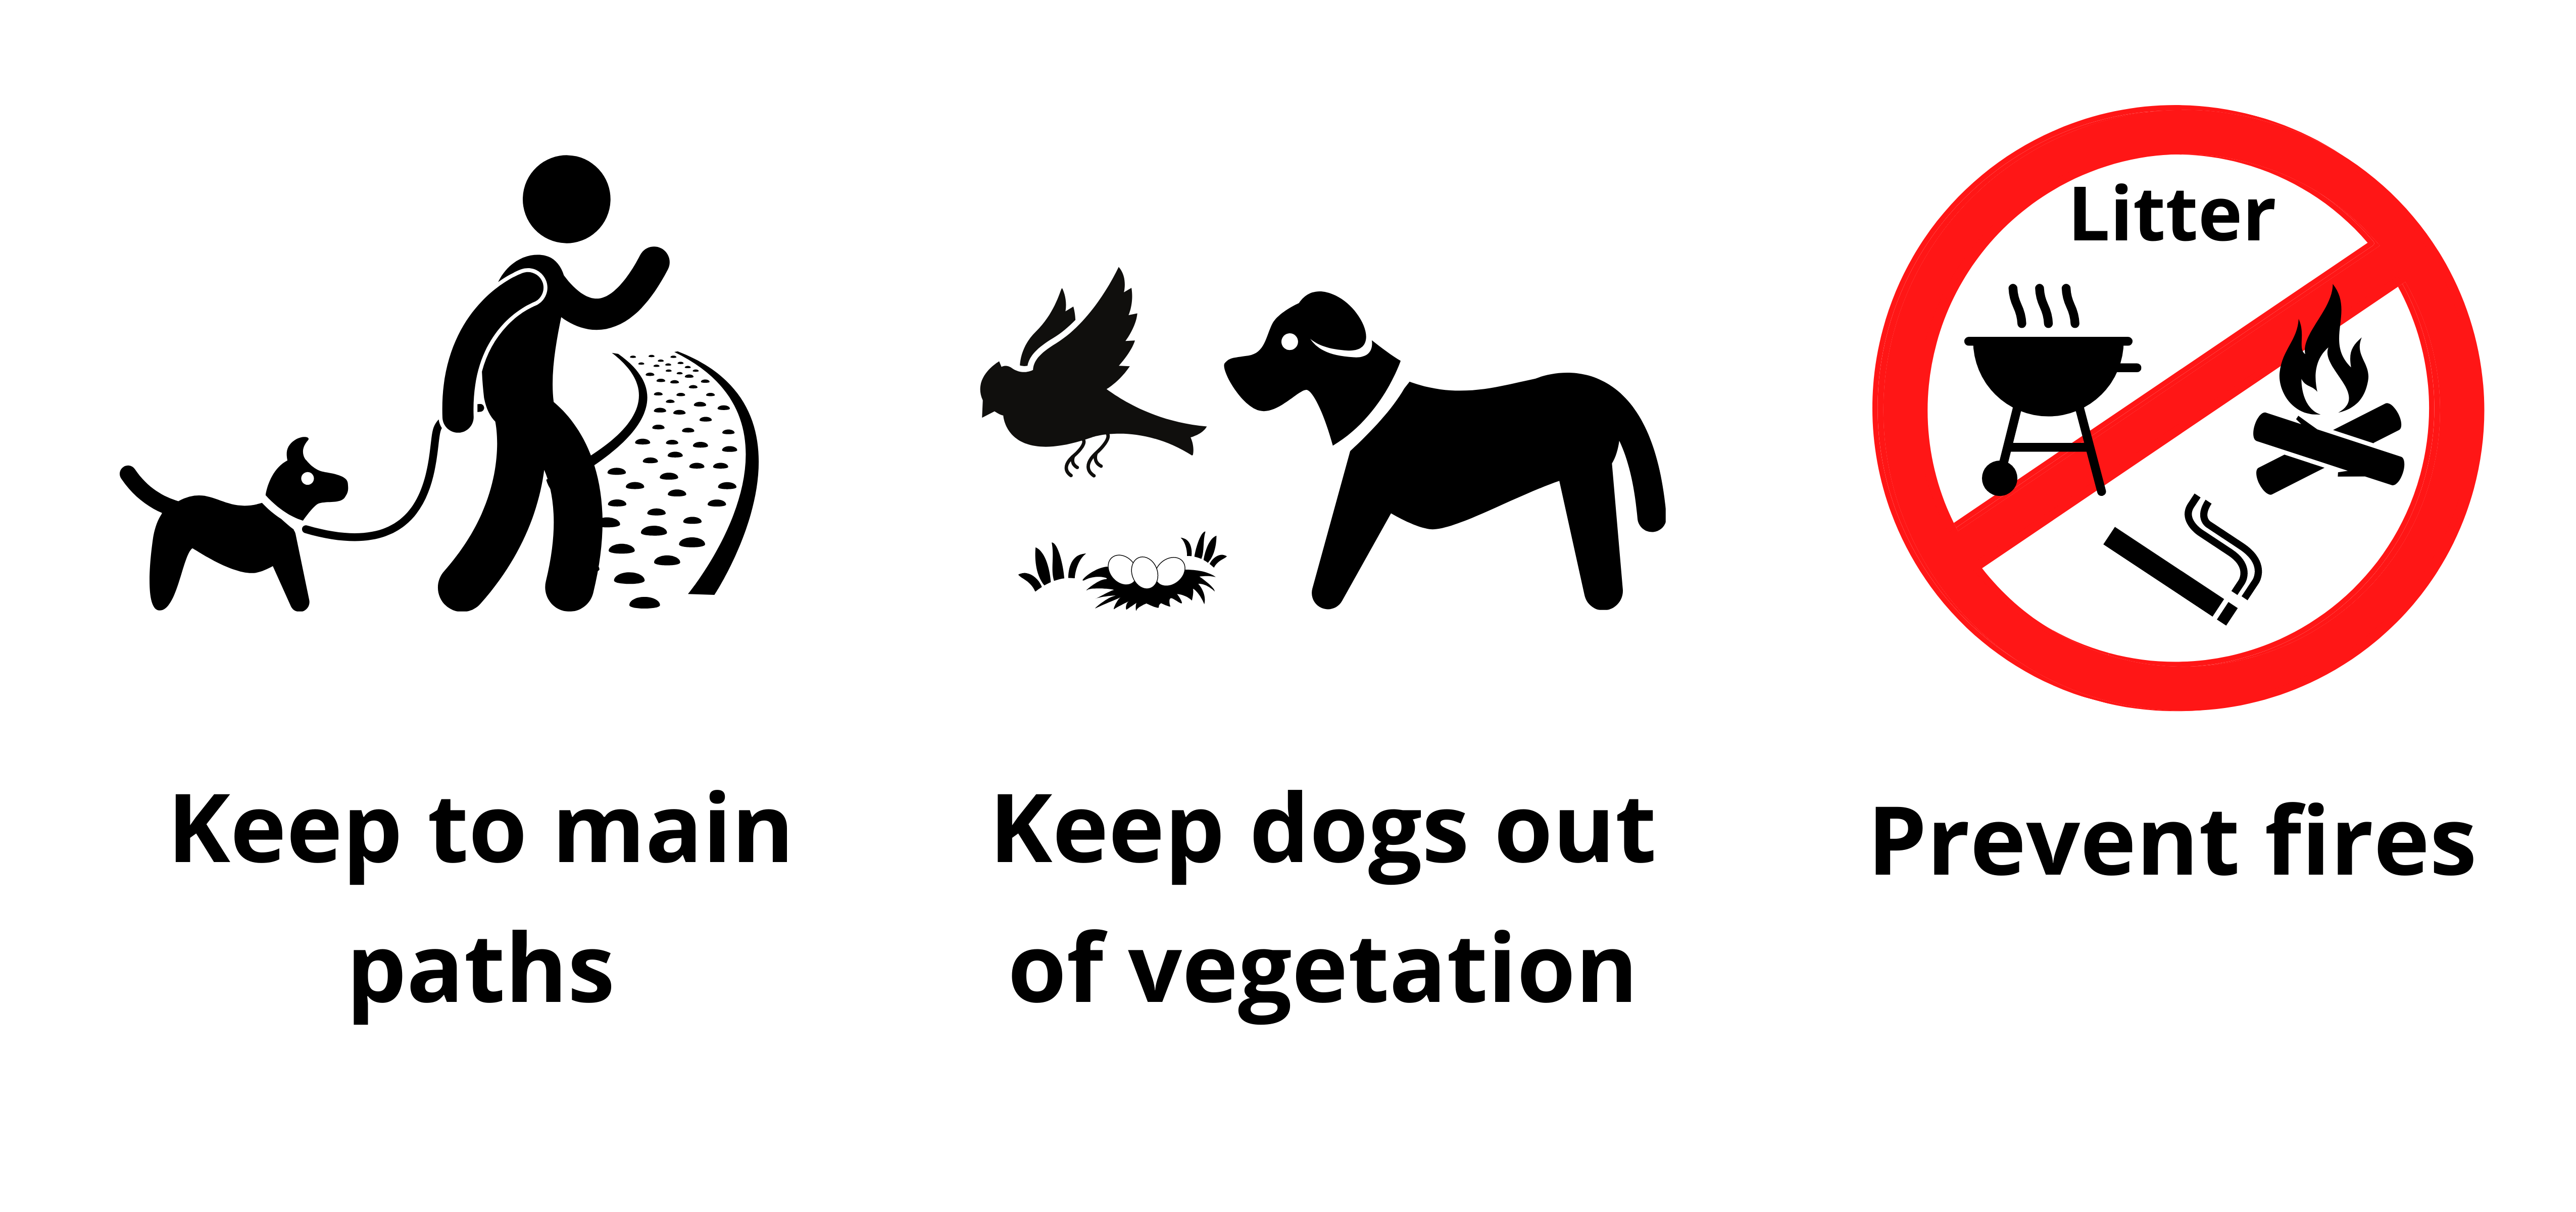 """Pictorial messages for """"Keep to main paths"""", """"Keep dogs out of vegetation"""" and """"Prevent fires"""""""